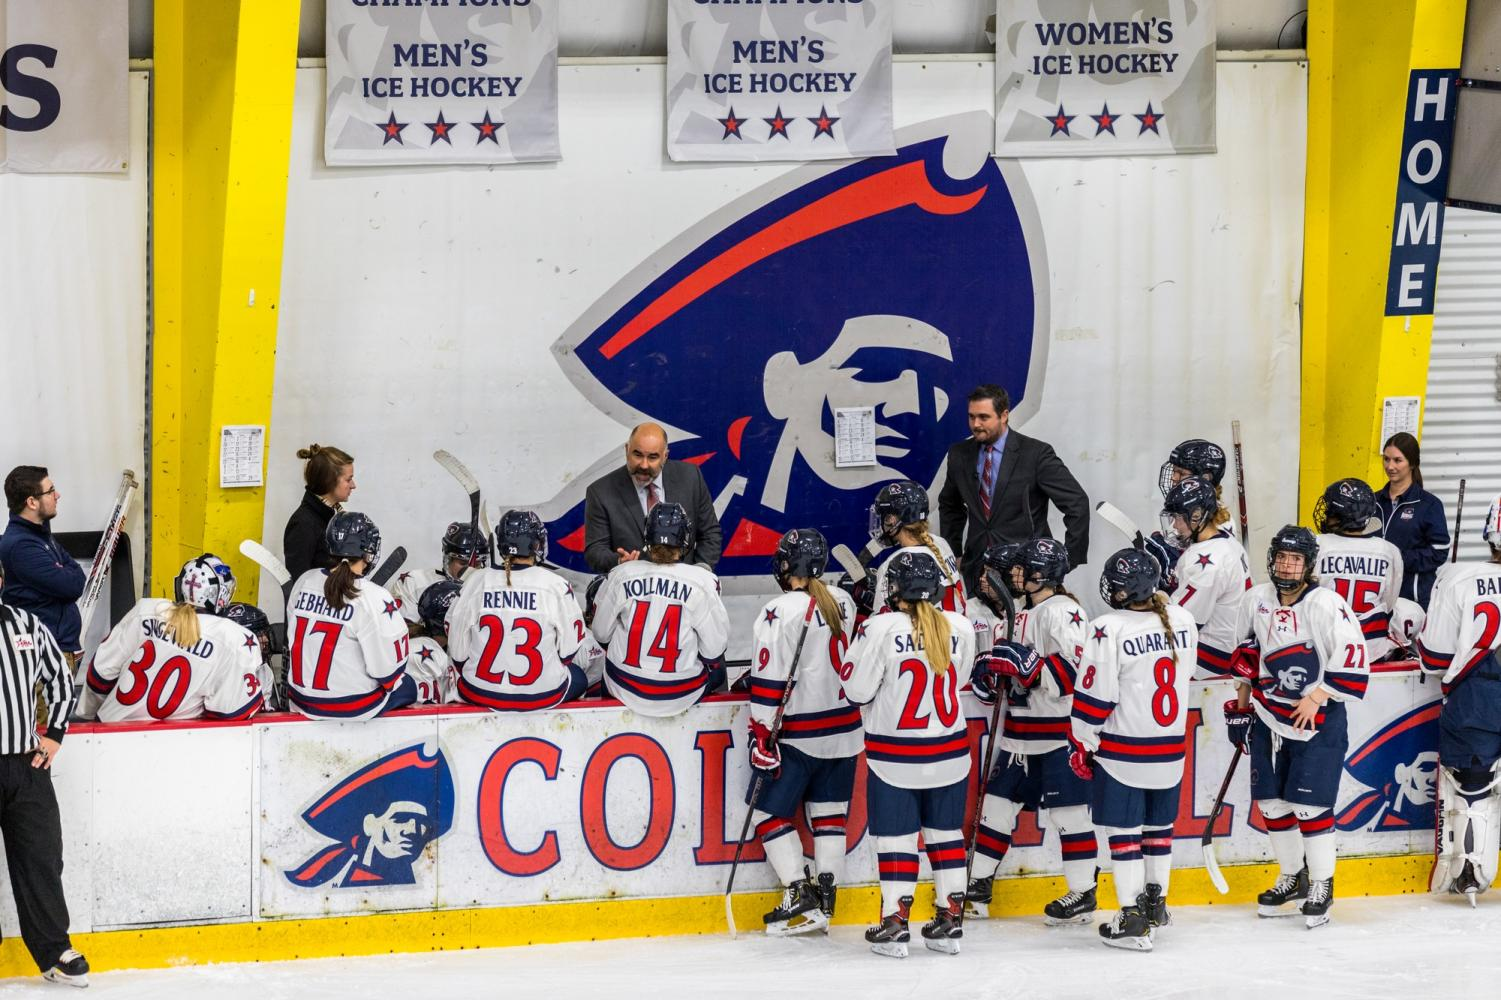 The Robert Morris women's hockey meets during a break against RPI Nov. 12, 2018 (David Auth/RMU Sentry Media) Photo credit: David Auth